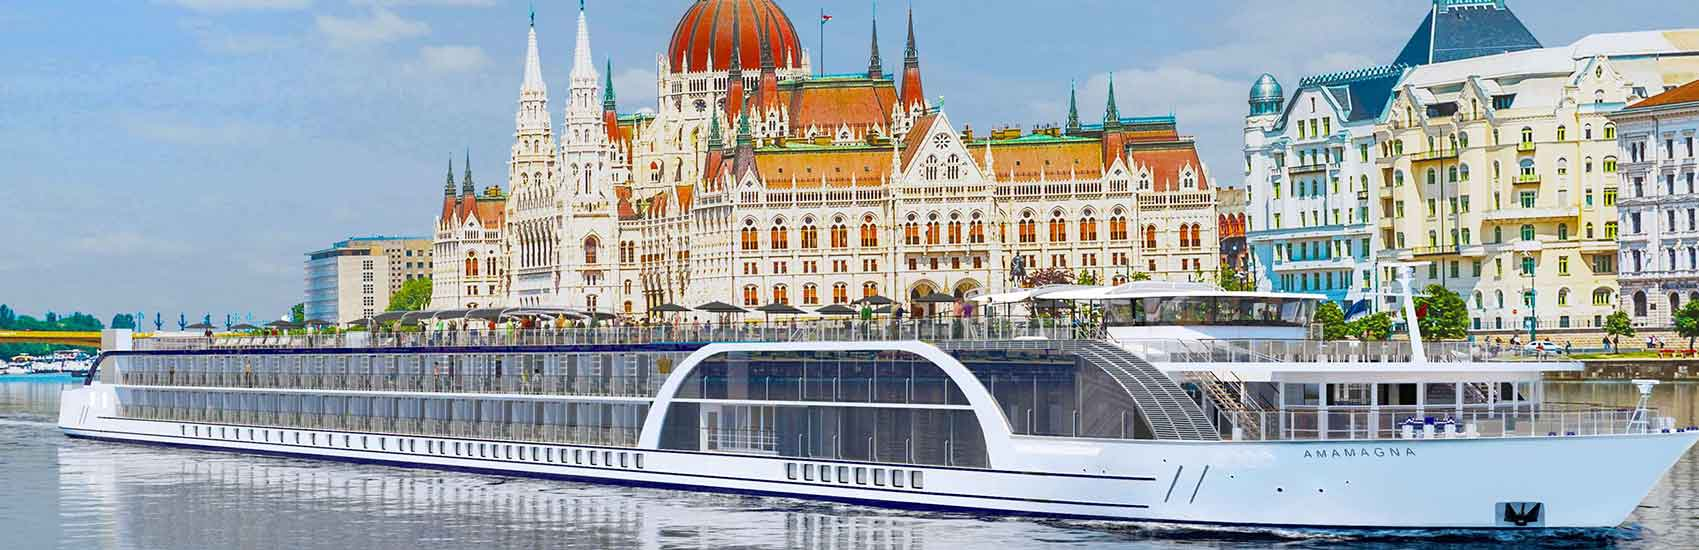 Exclusive Offer With AmaWaterways 0